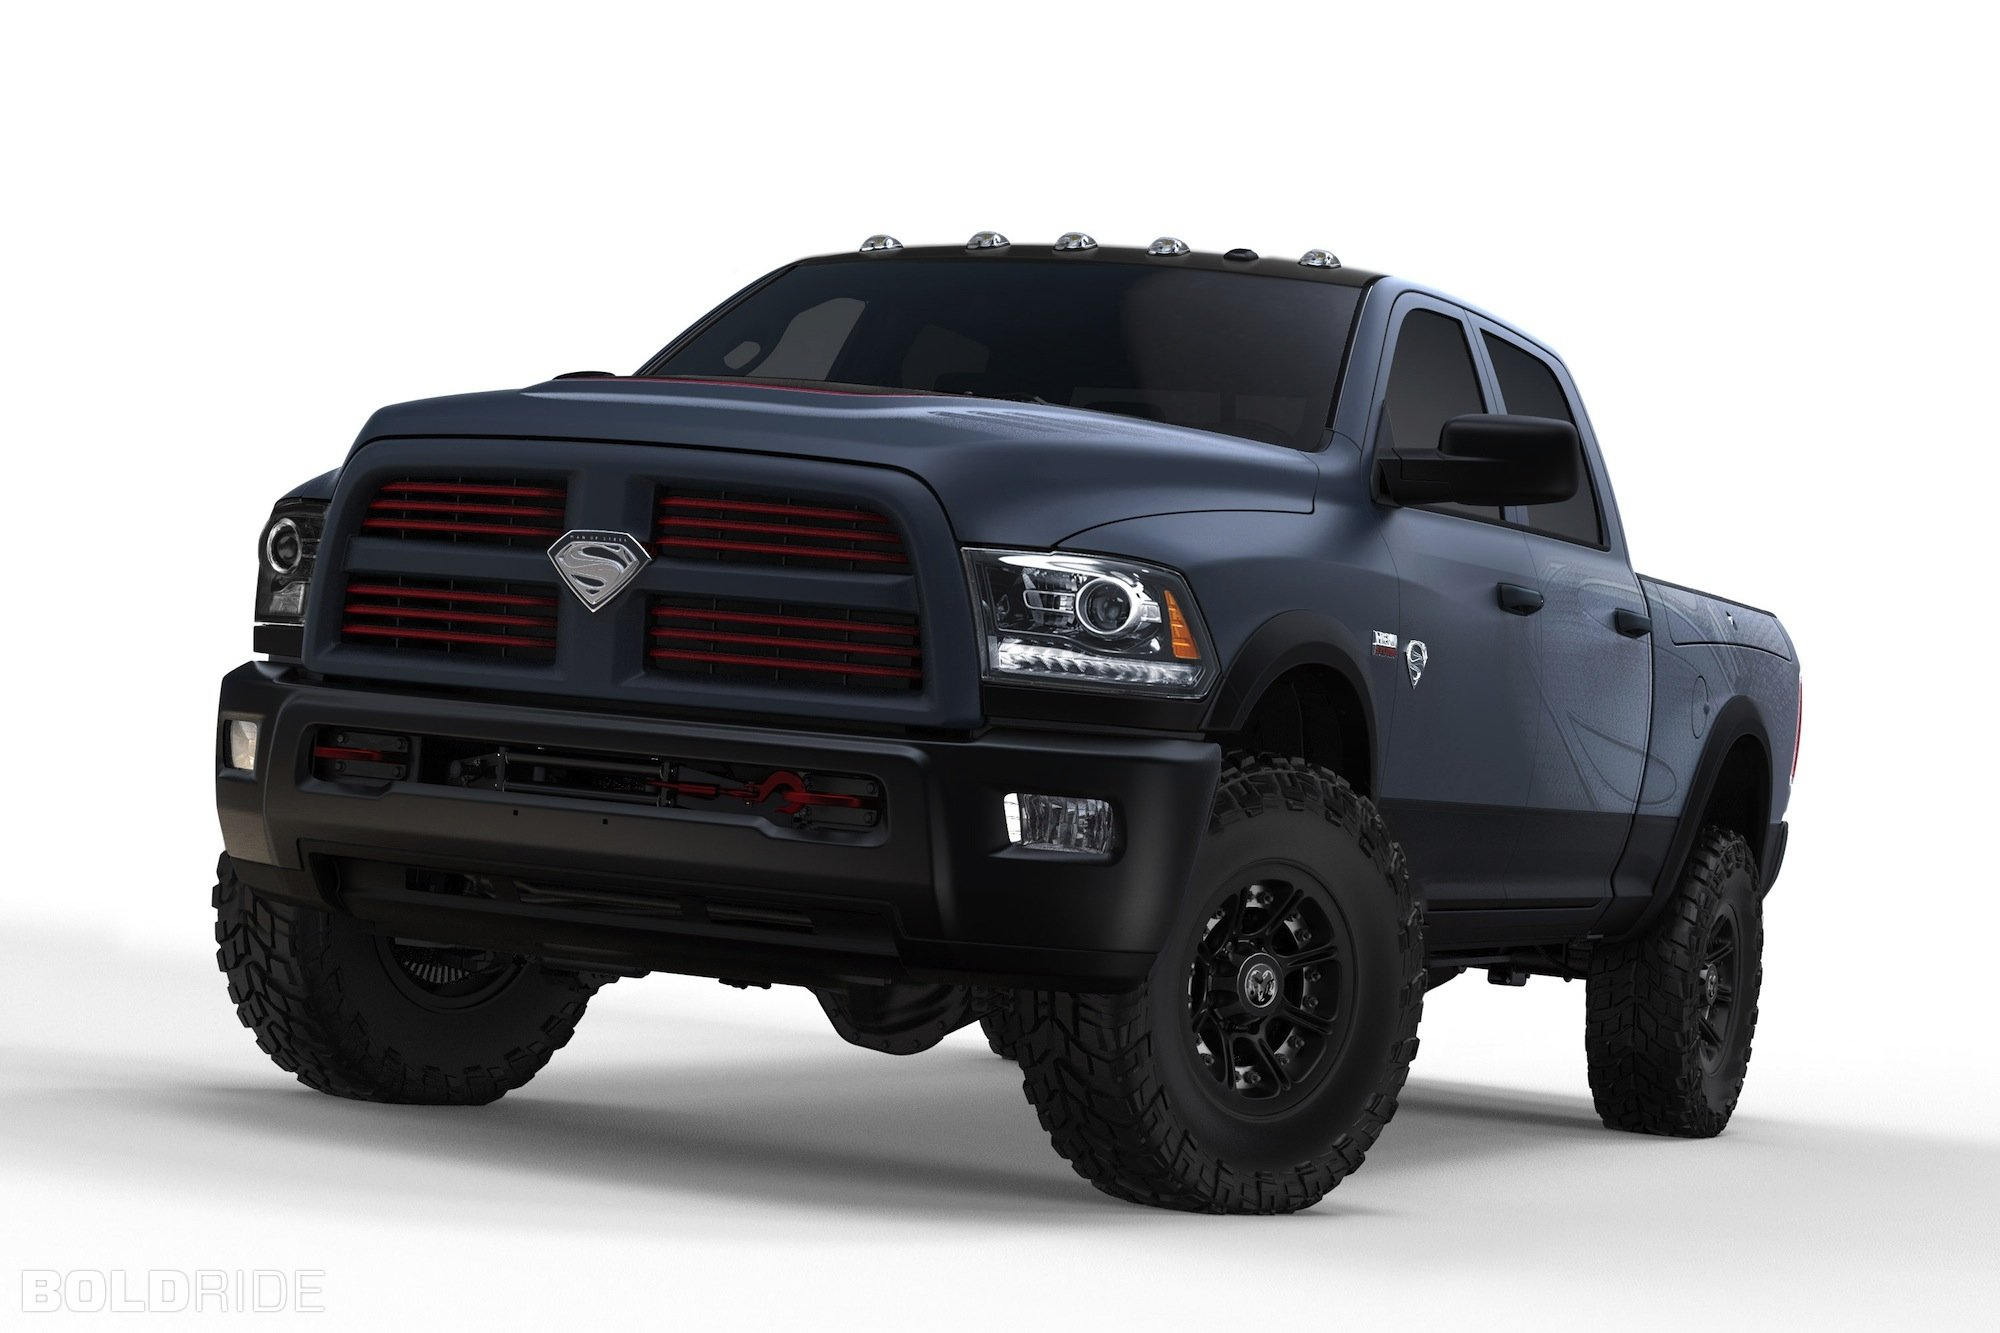 2013 Ram Power Wagon offroad 4x4 truck wallpaper 2000x1333 2000x1333